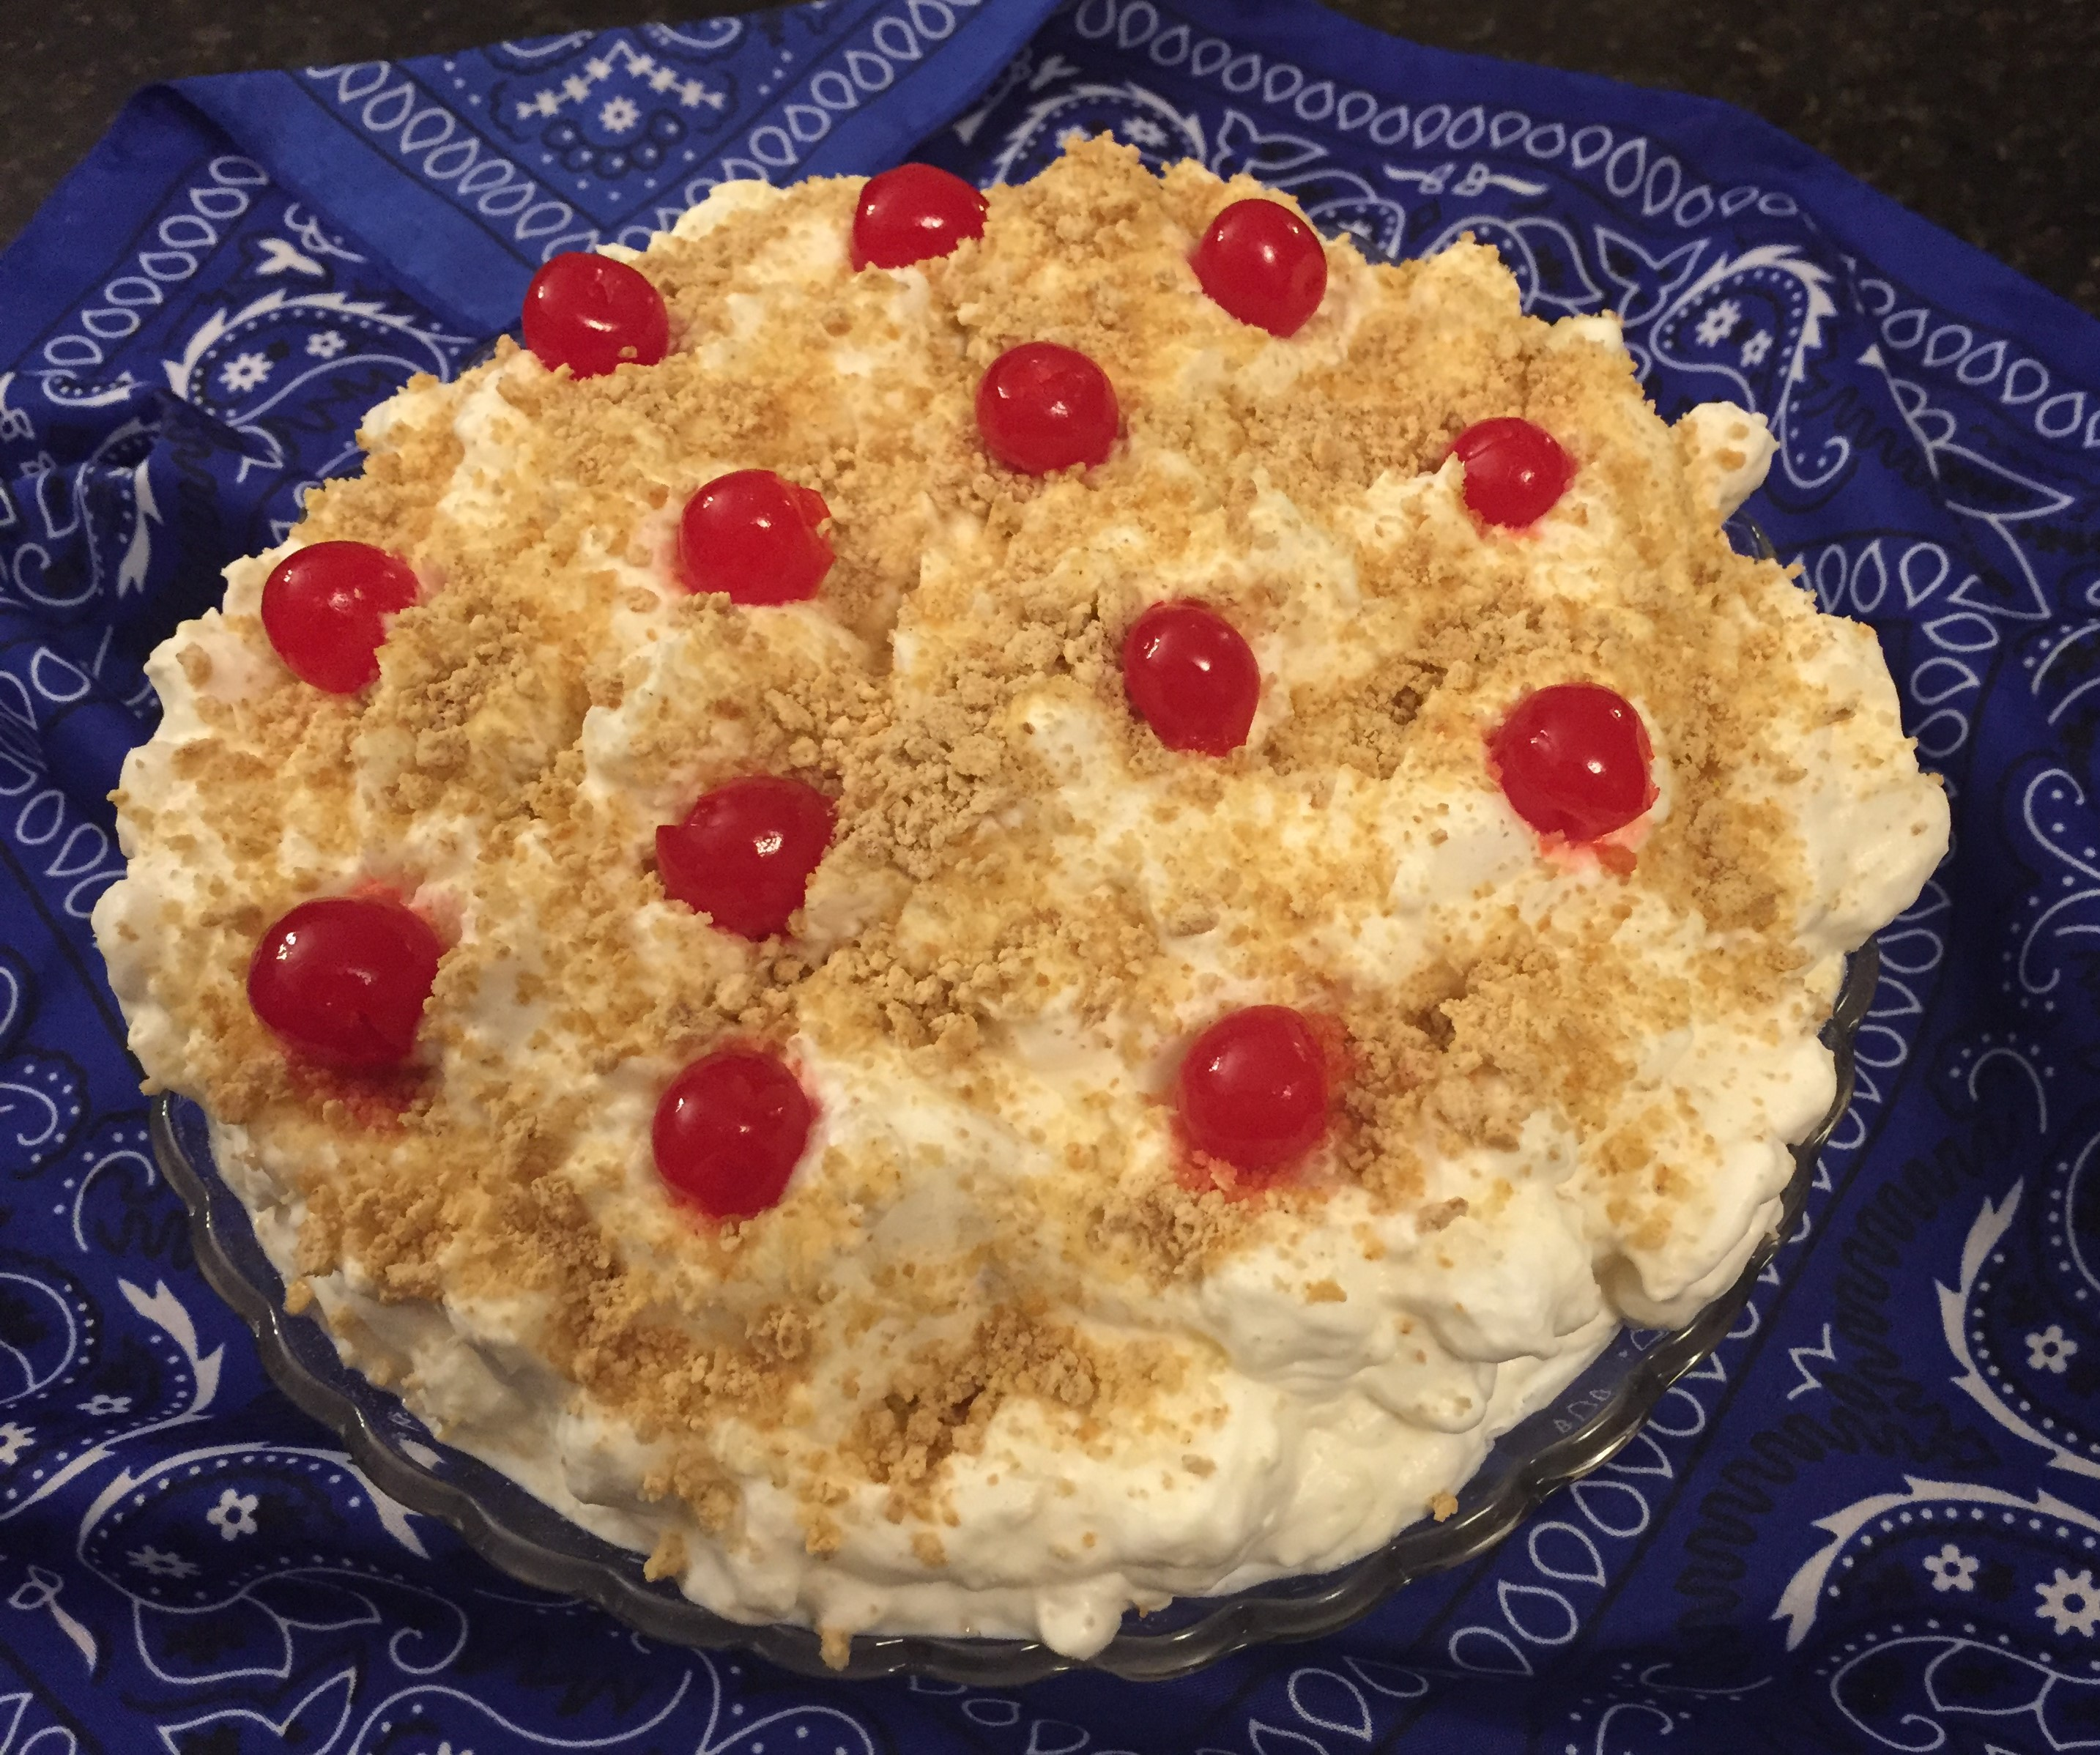 Whipped cream salad that is perfect for Christmas dessert!